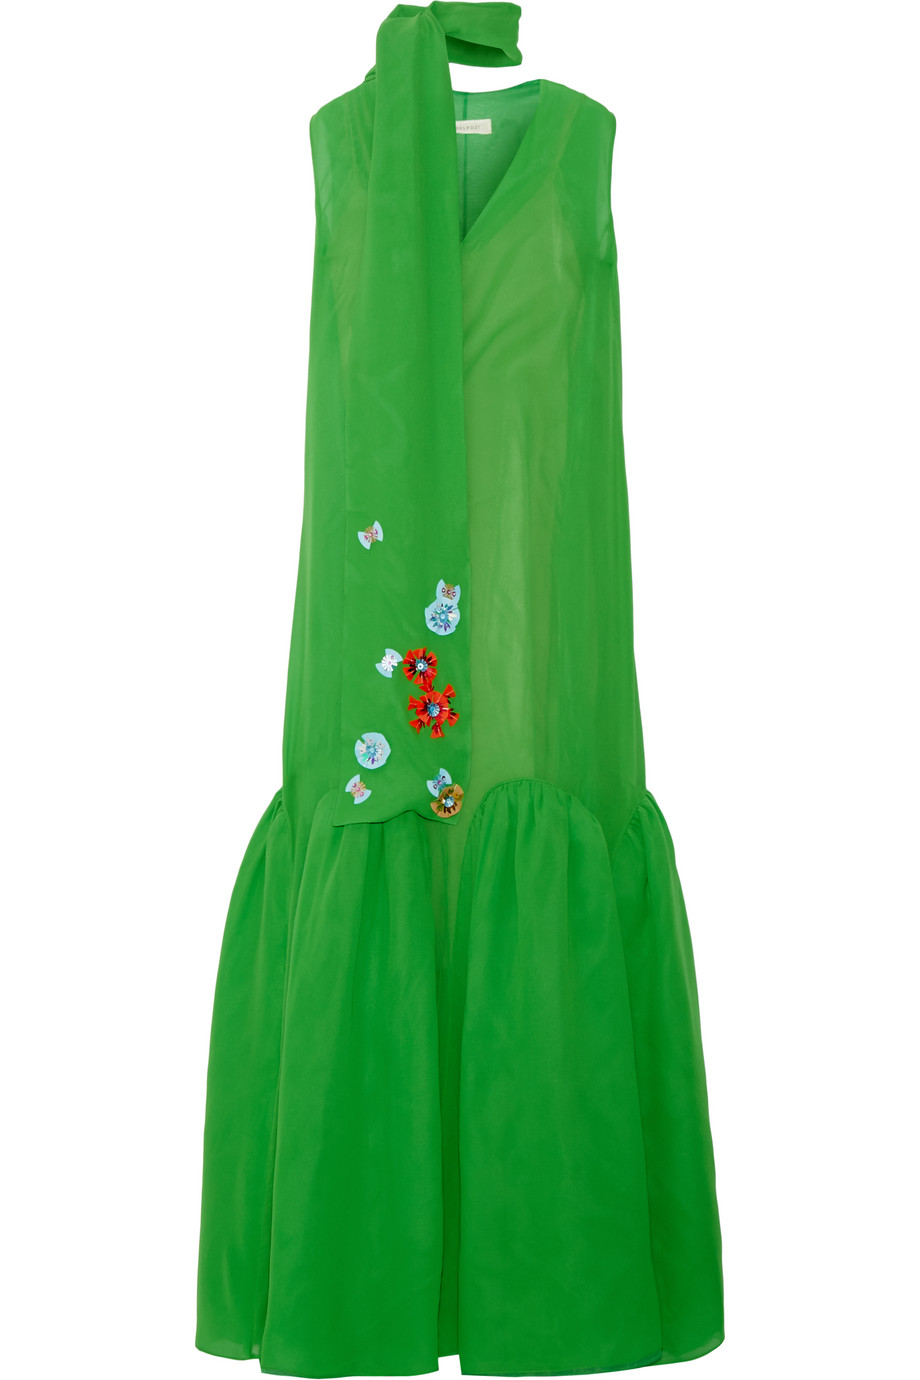 Delpozo Embellished Silk-Georgette Maxi Dress, Green, Women's - Floral, Size: 38